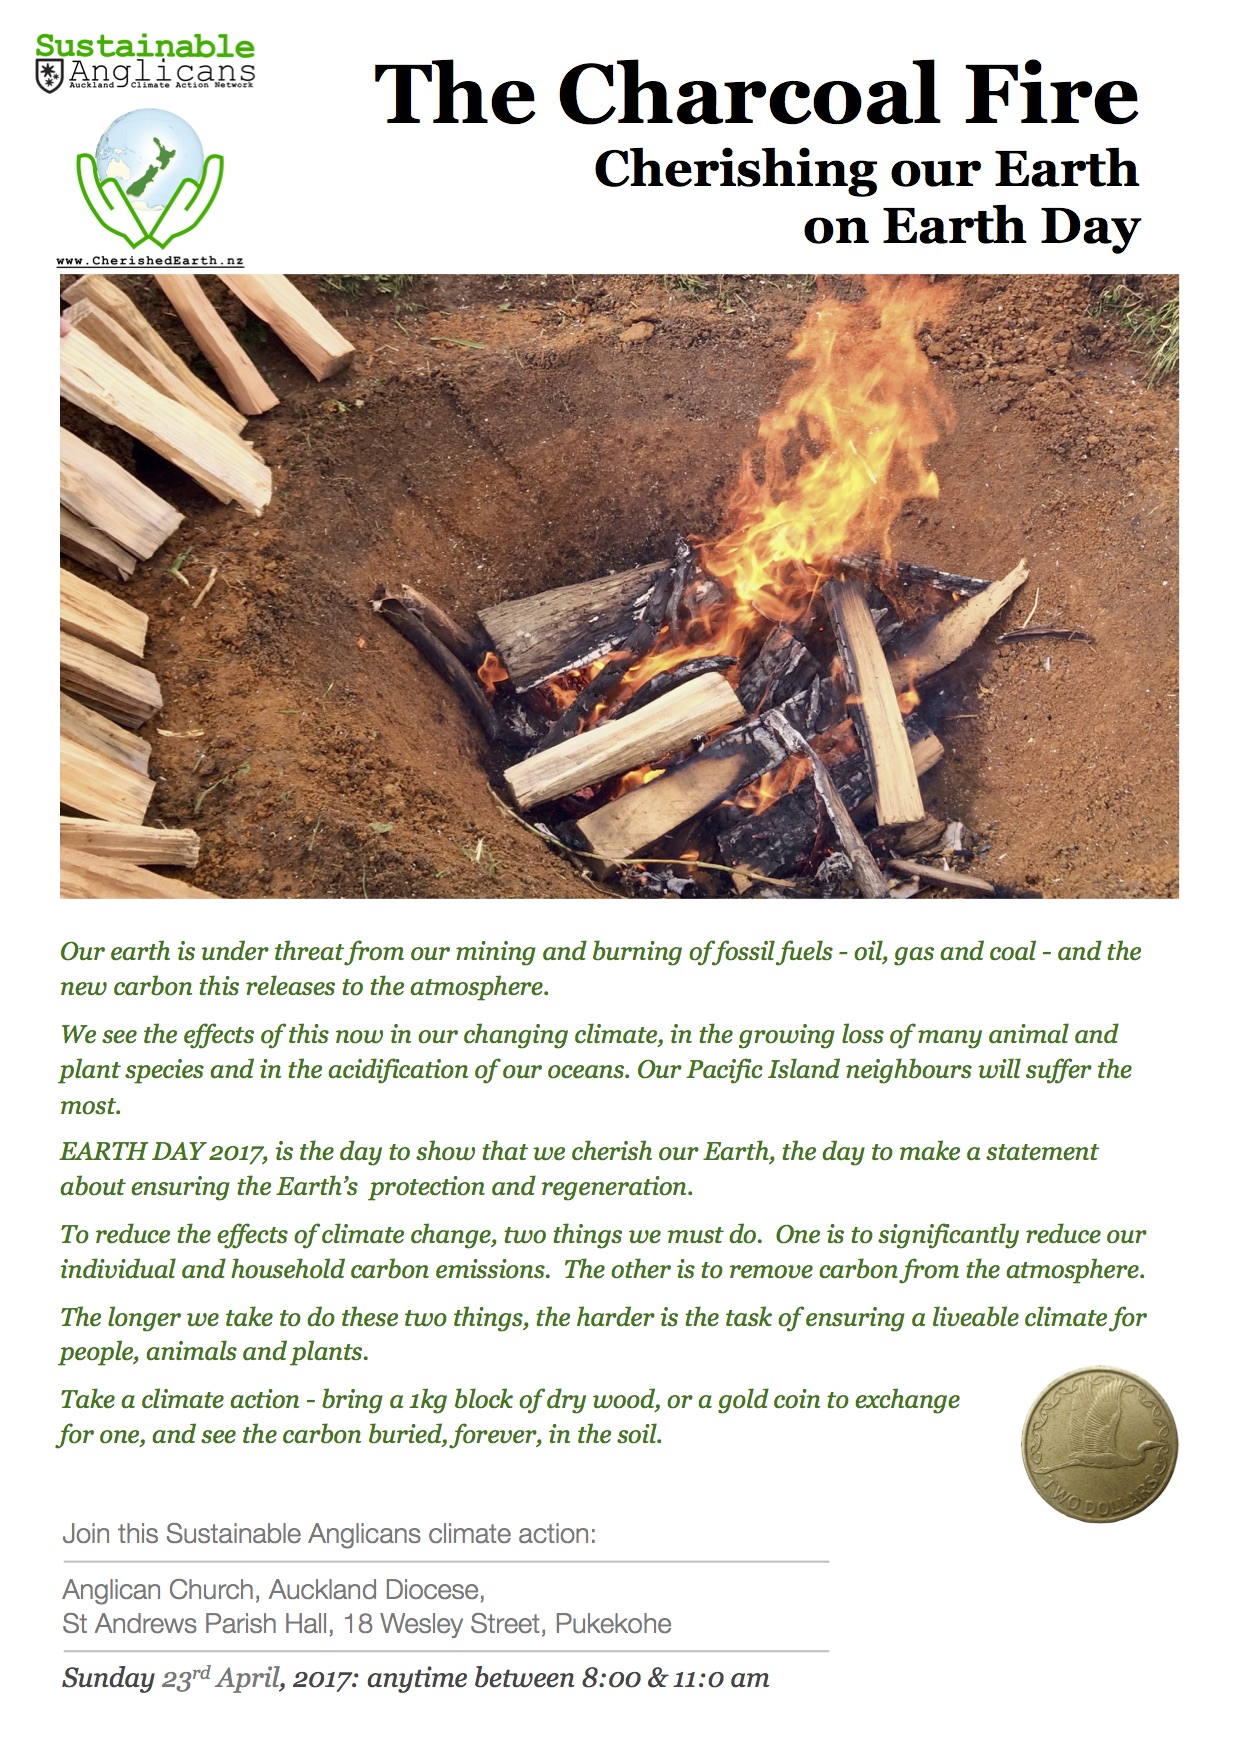 The Charcoal Fire - A climate action.page1.jpg